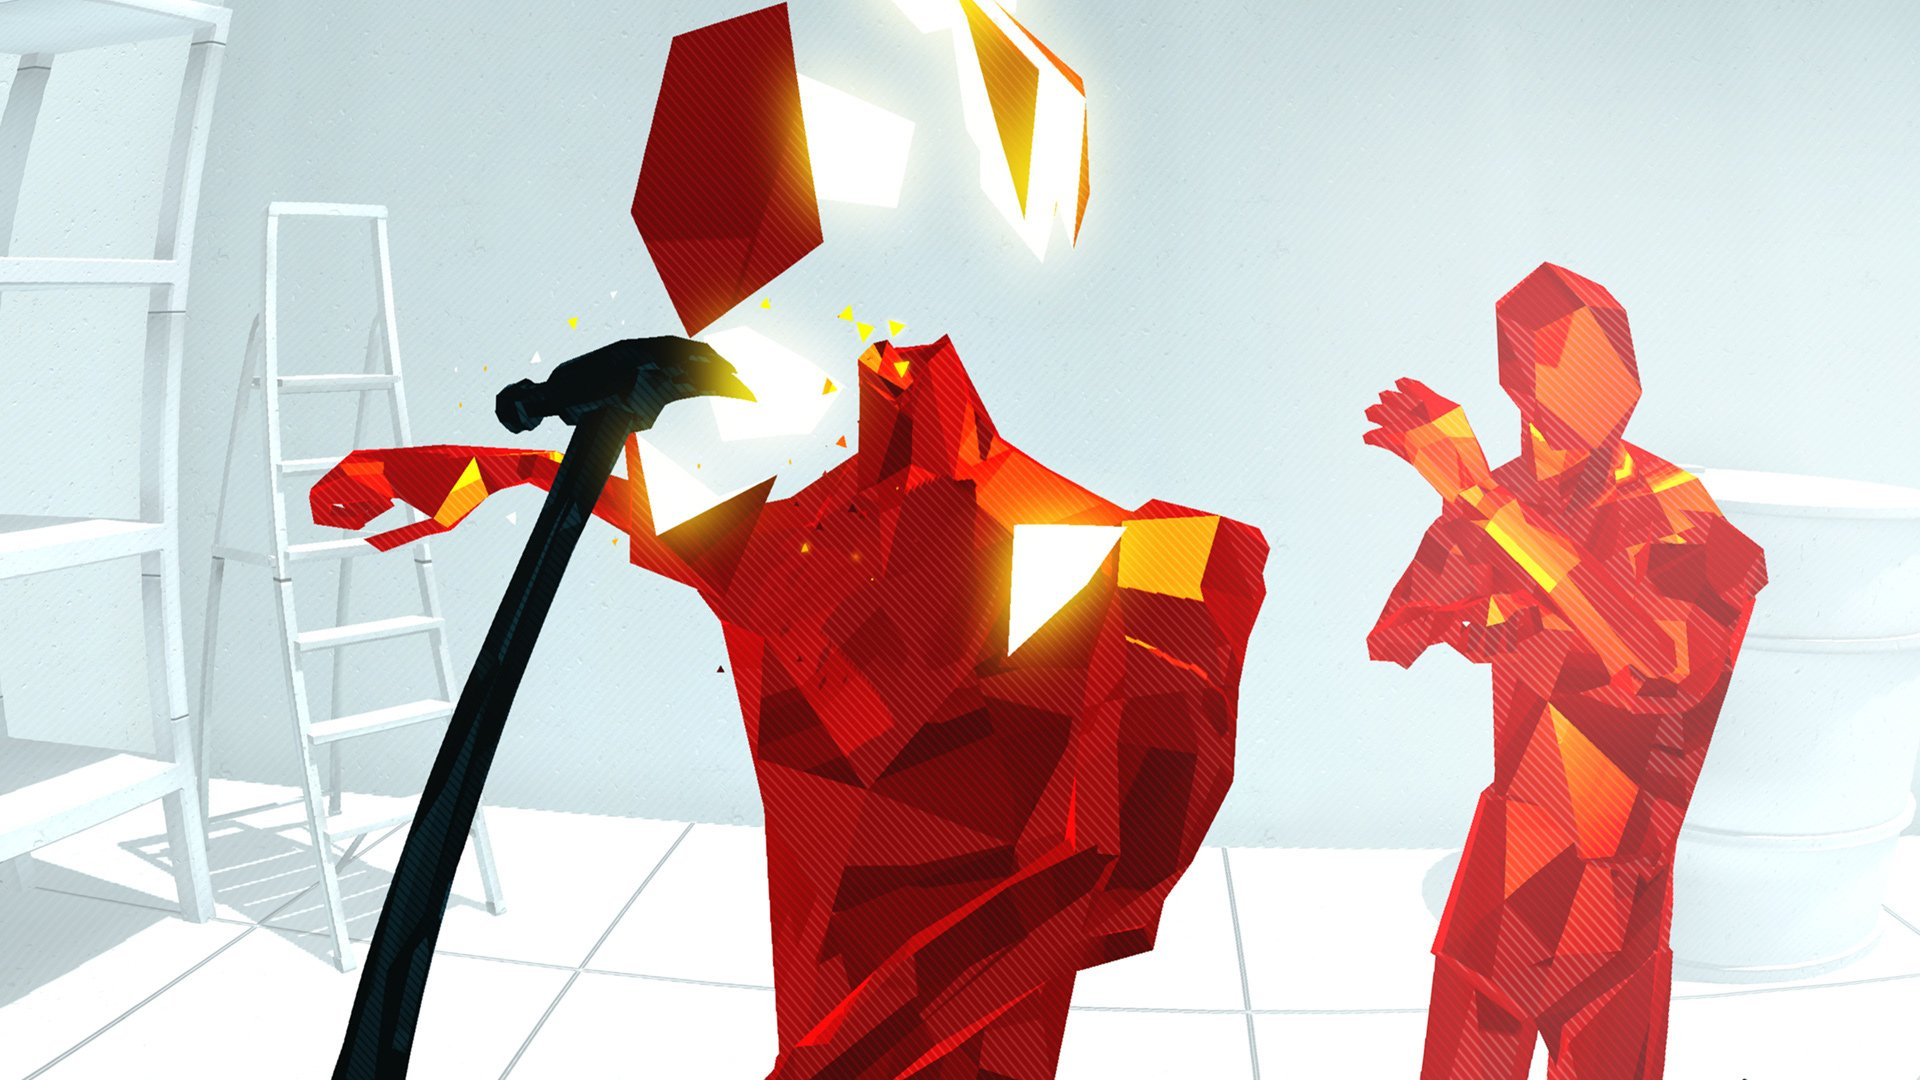 Superhot VR is selling so well, it has earned more revenue than the non-VR original screenshot